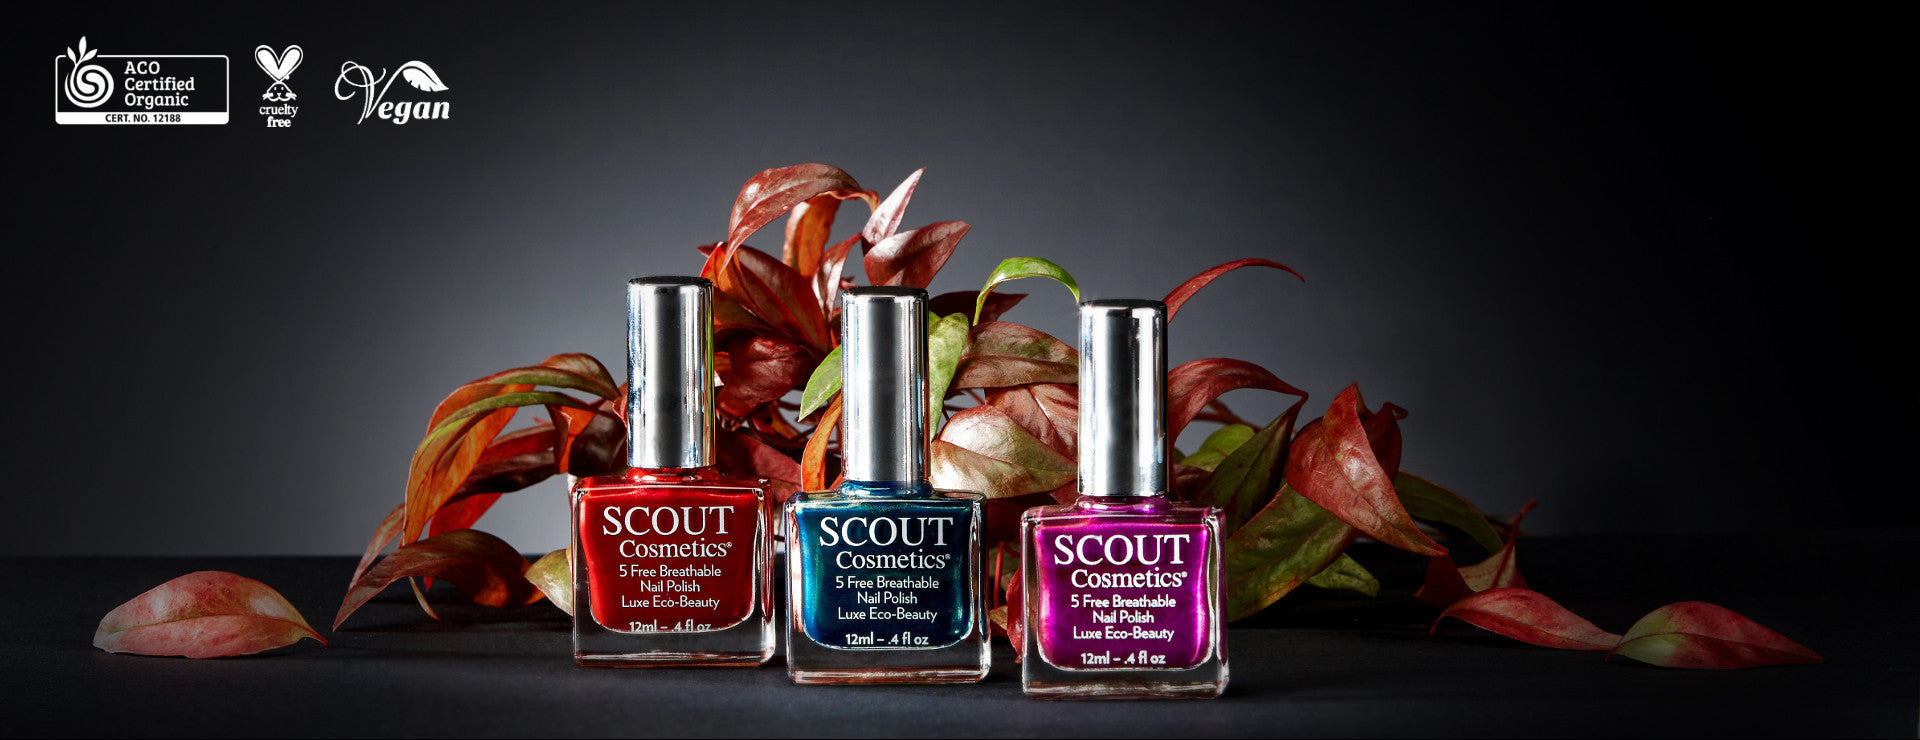 SCOUT Cosmetics 2016